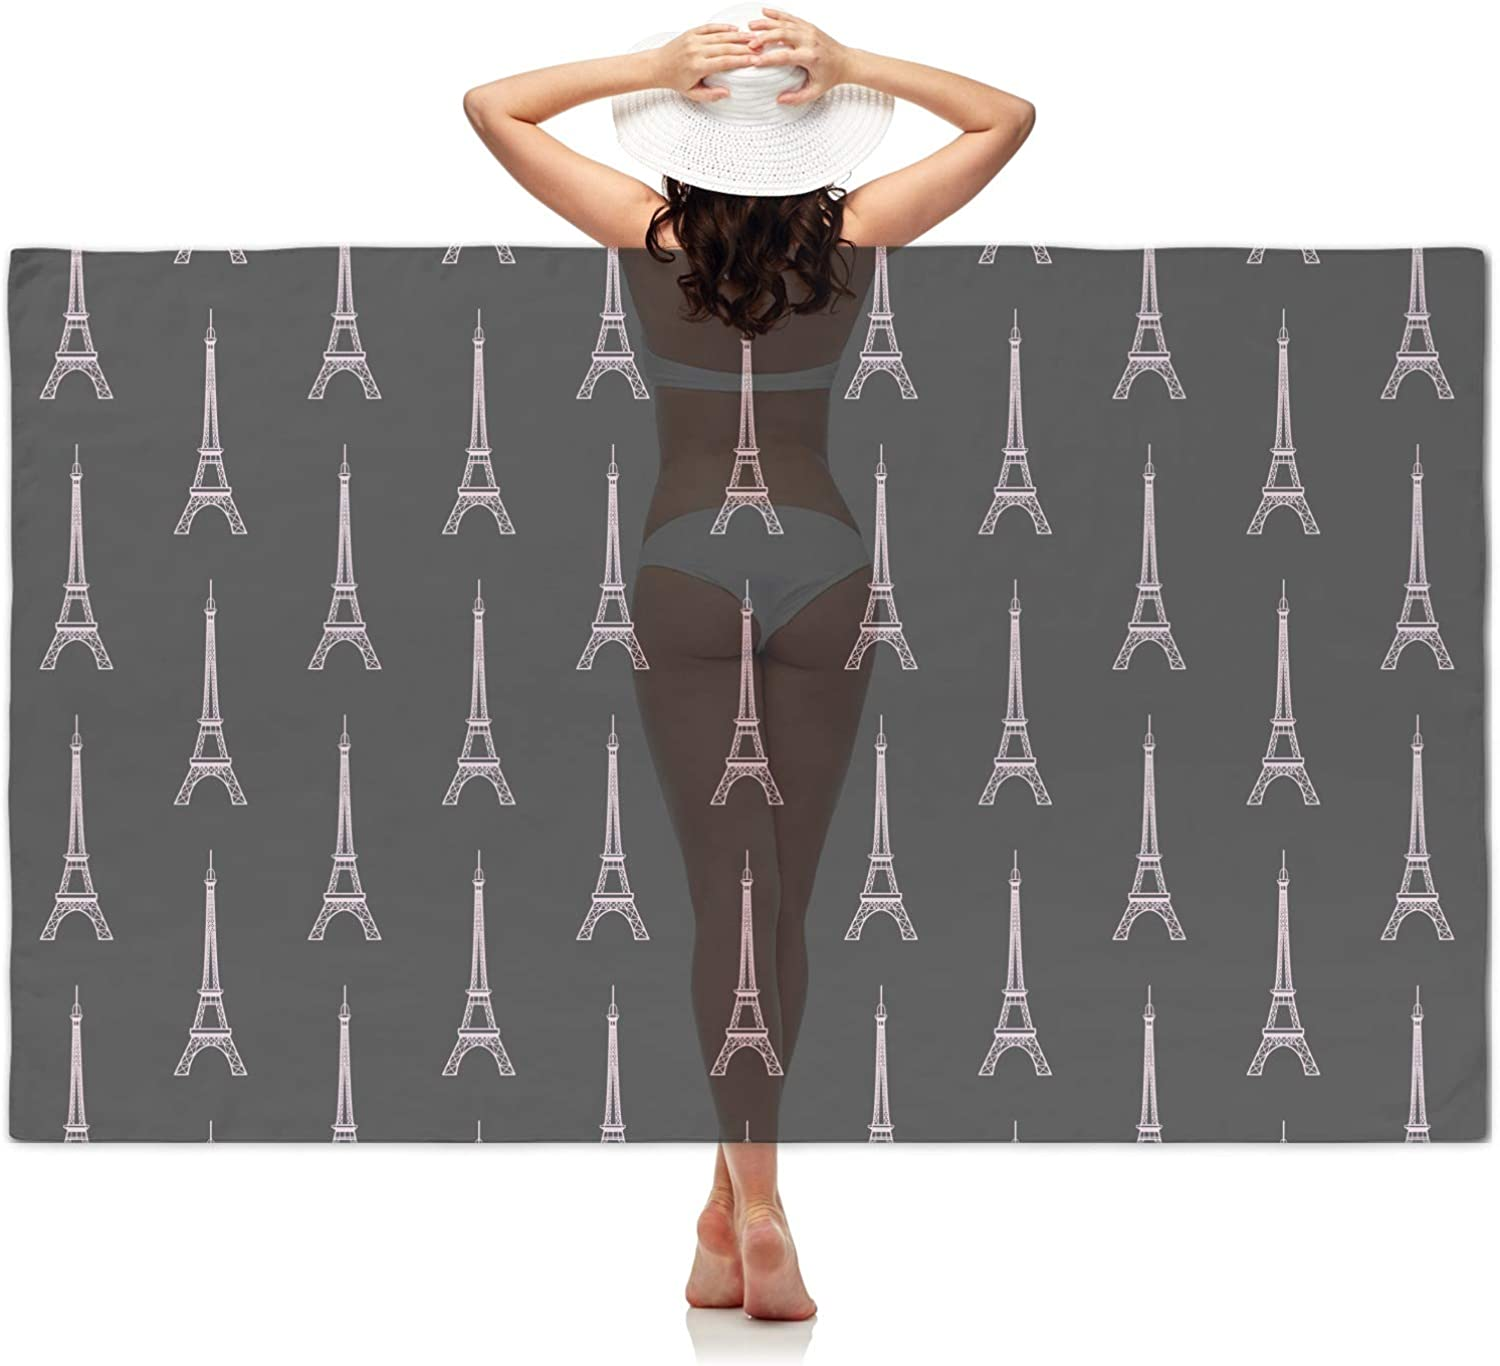 YouCustomizeIt Black Eiffel Tower Sheer Sarong Personalized